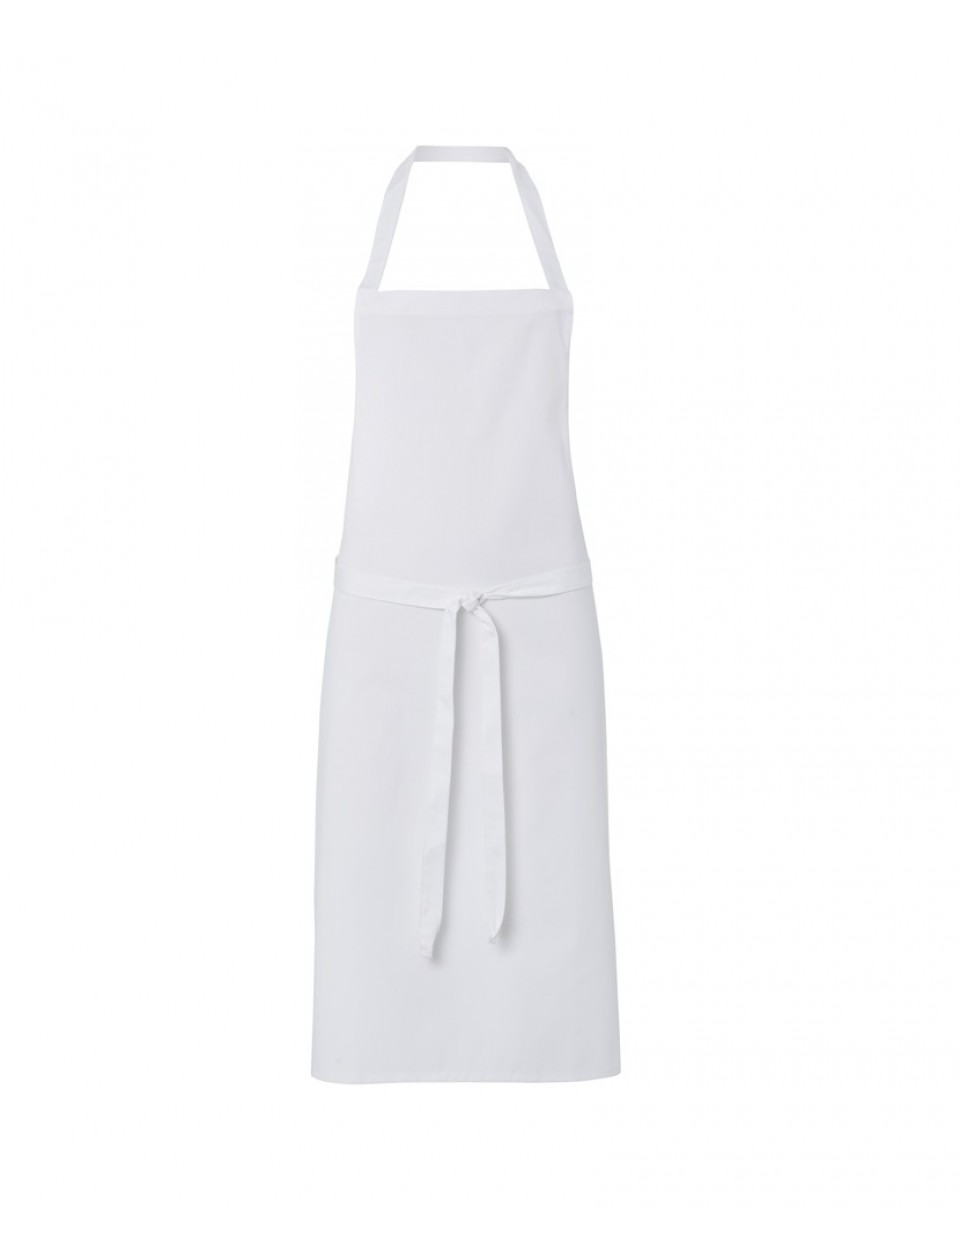 Apron Front : Alexandra NU691 White Bib Apron with Front Pocket - White Clothing